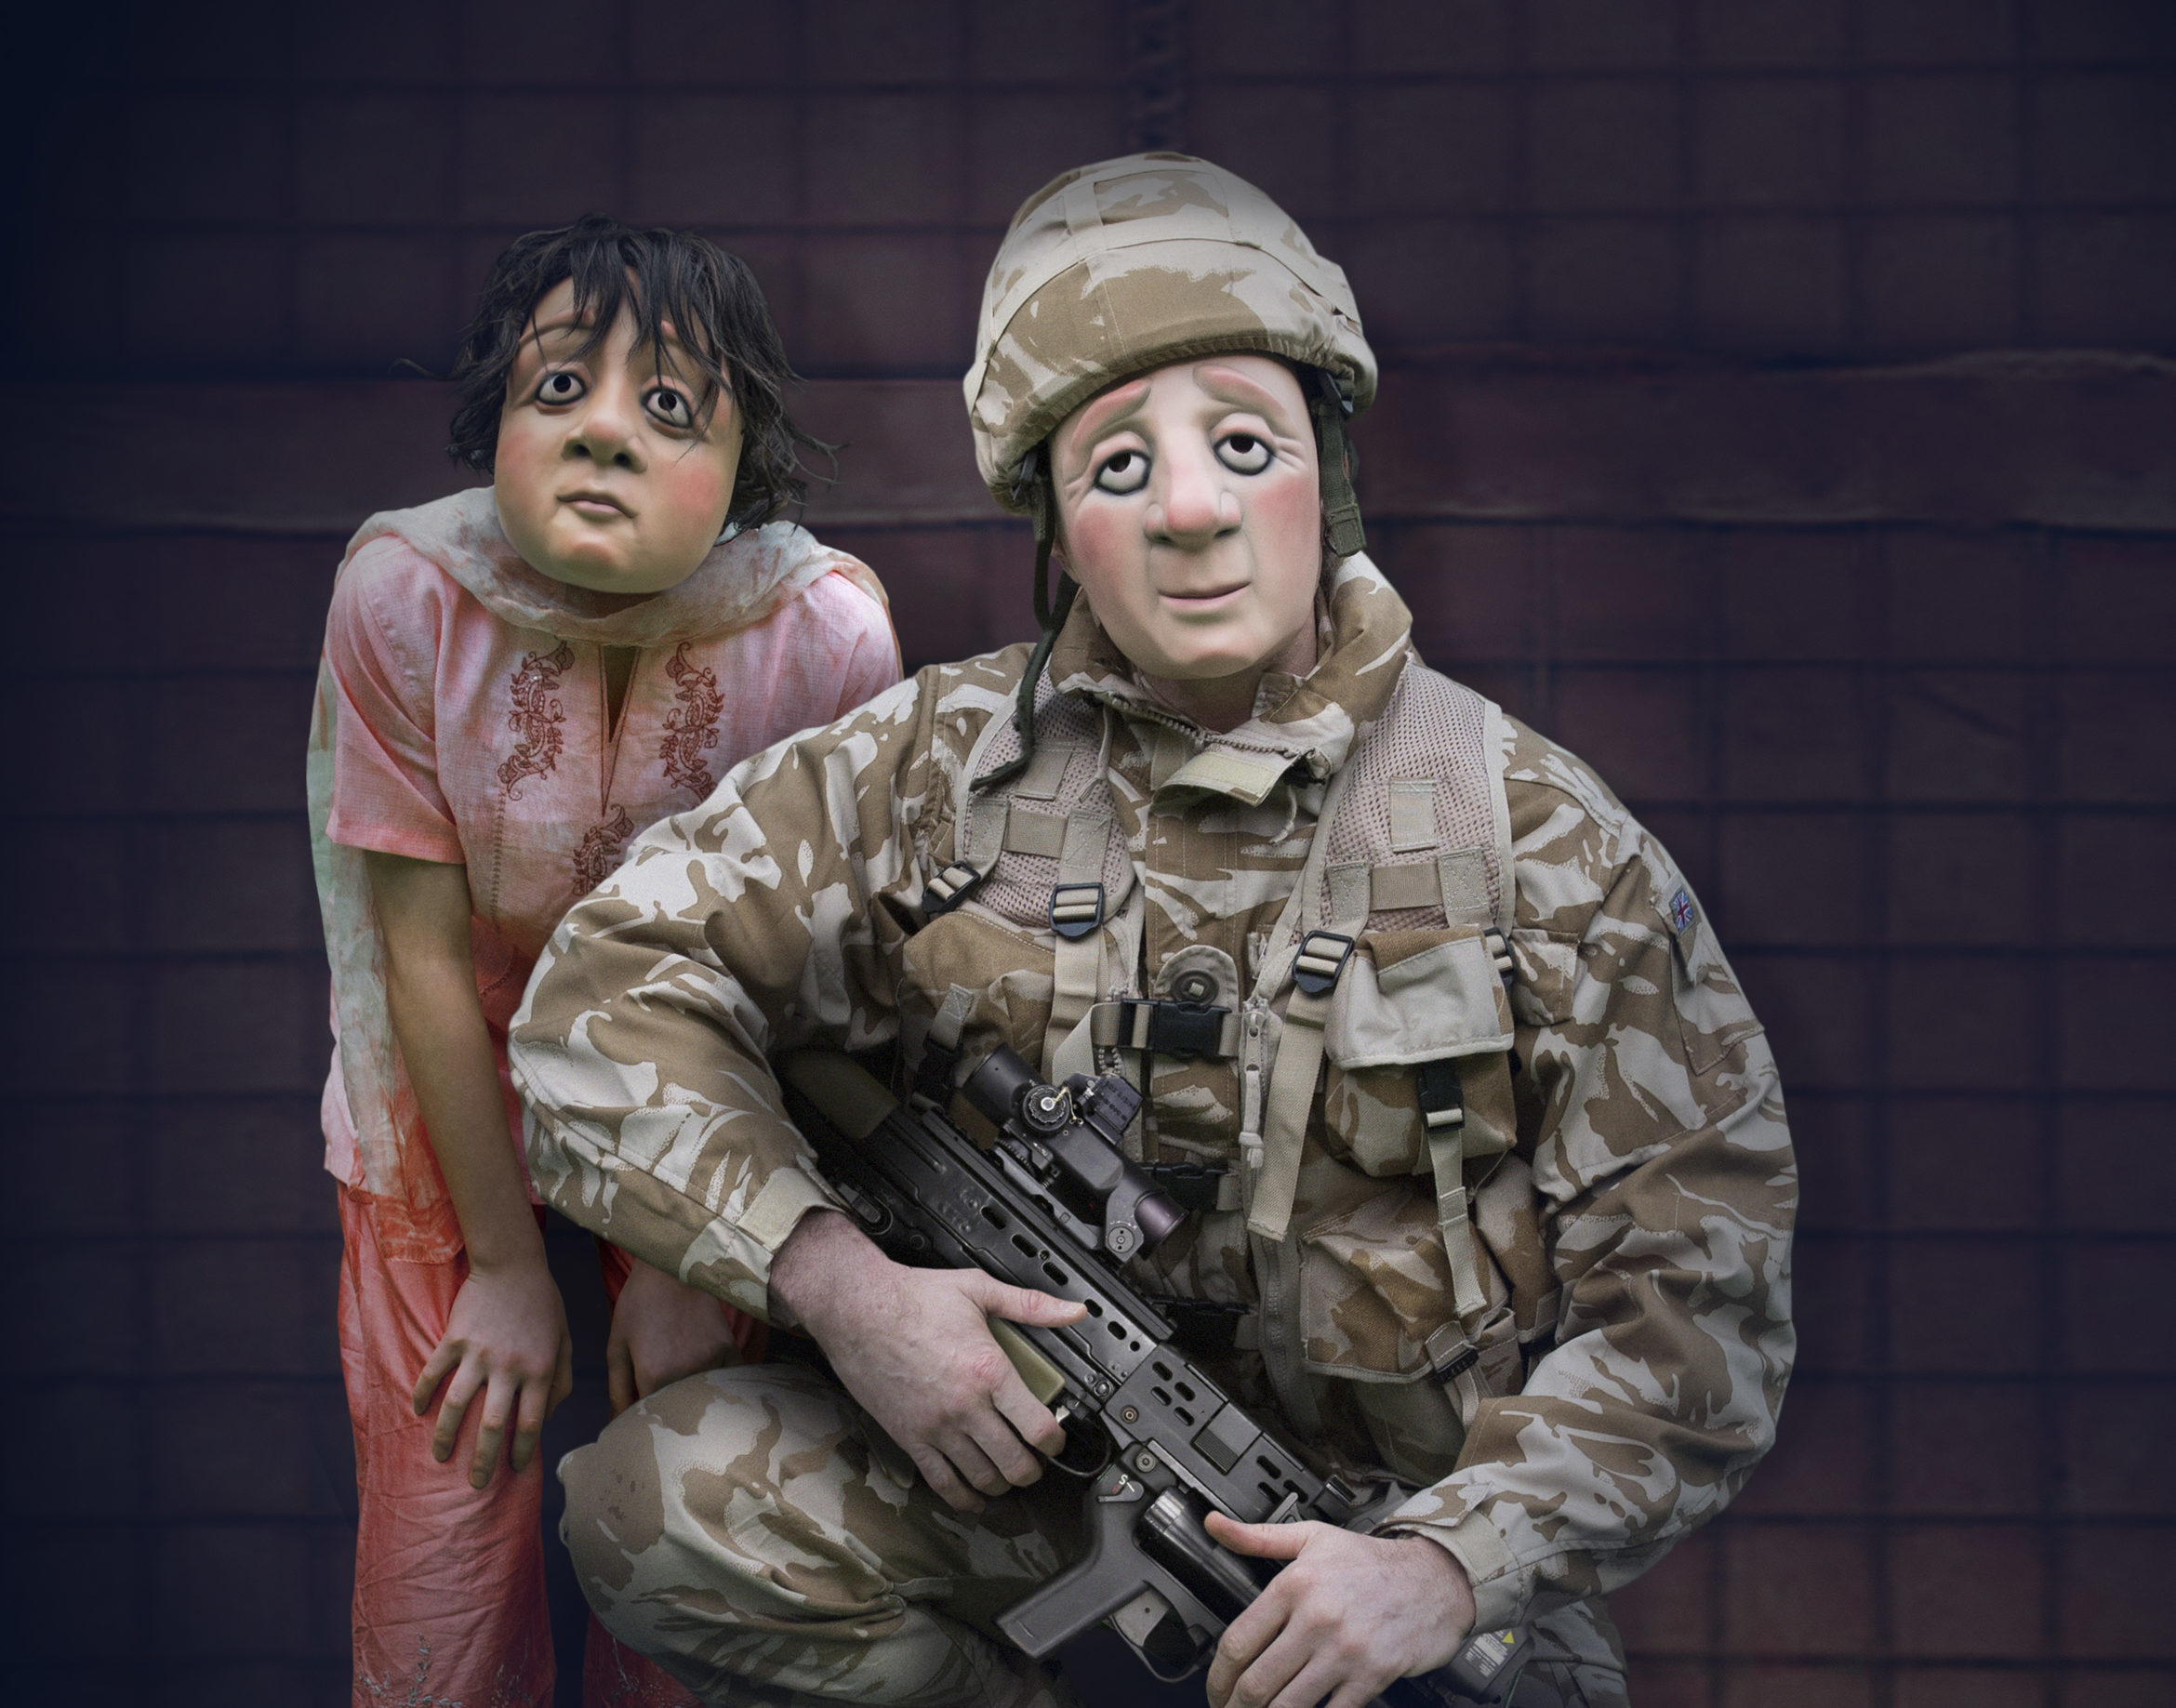 A soldier and child in A Brave Face